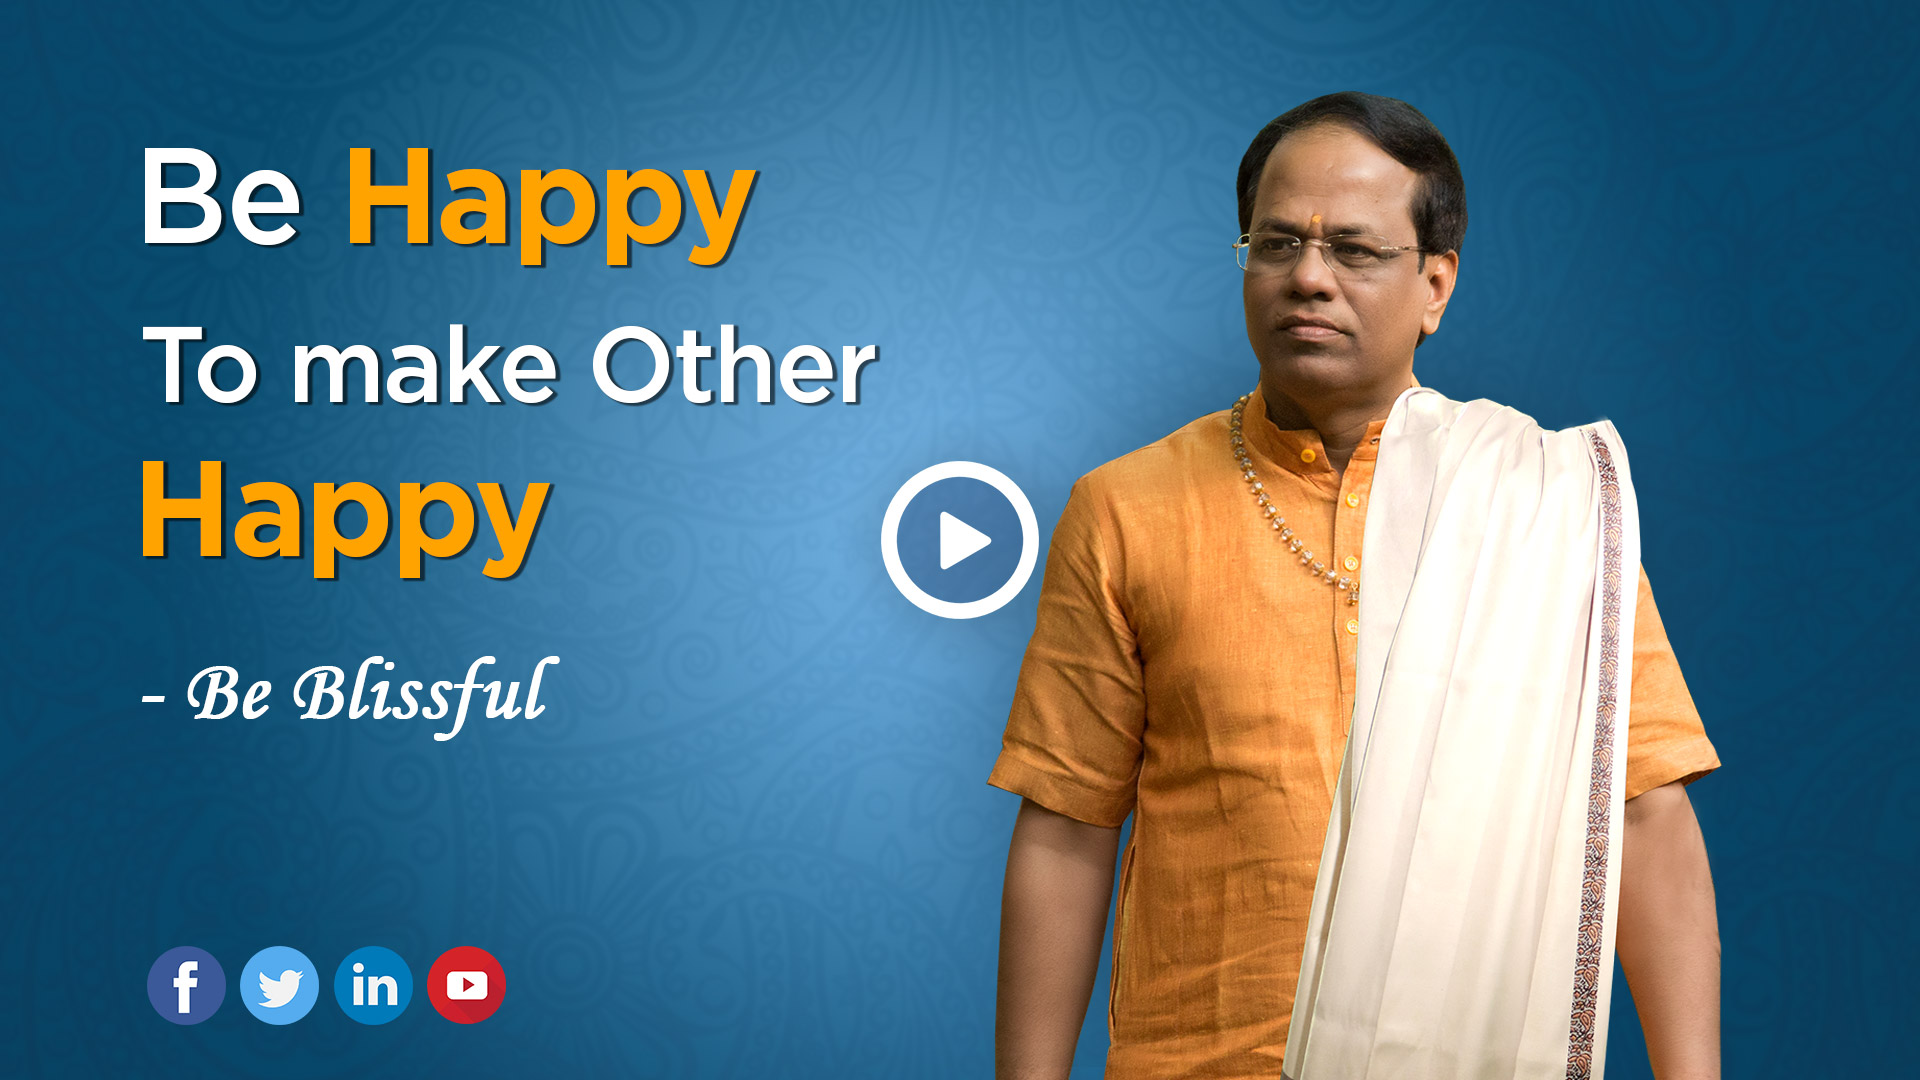 Blissful - Be Happy to Make Other Happy